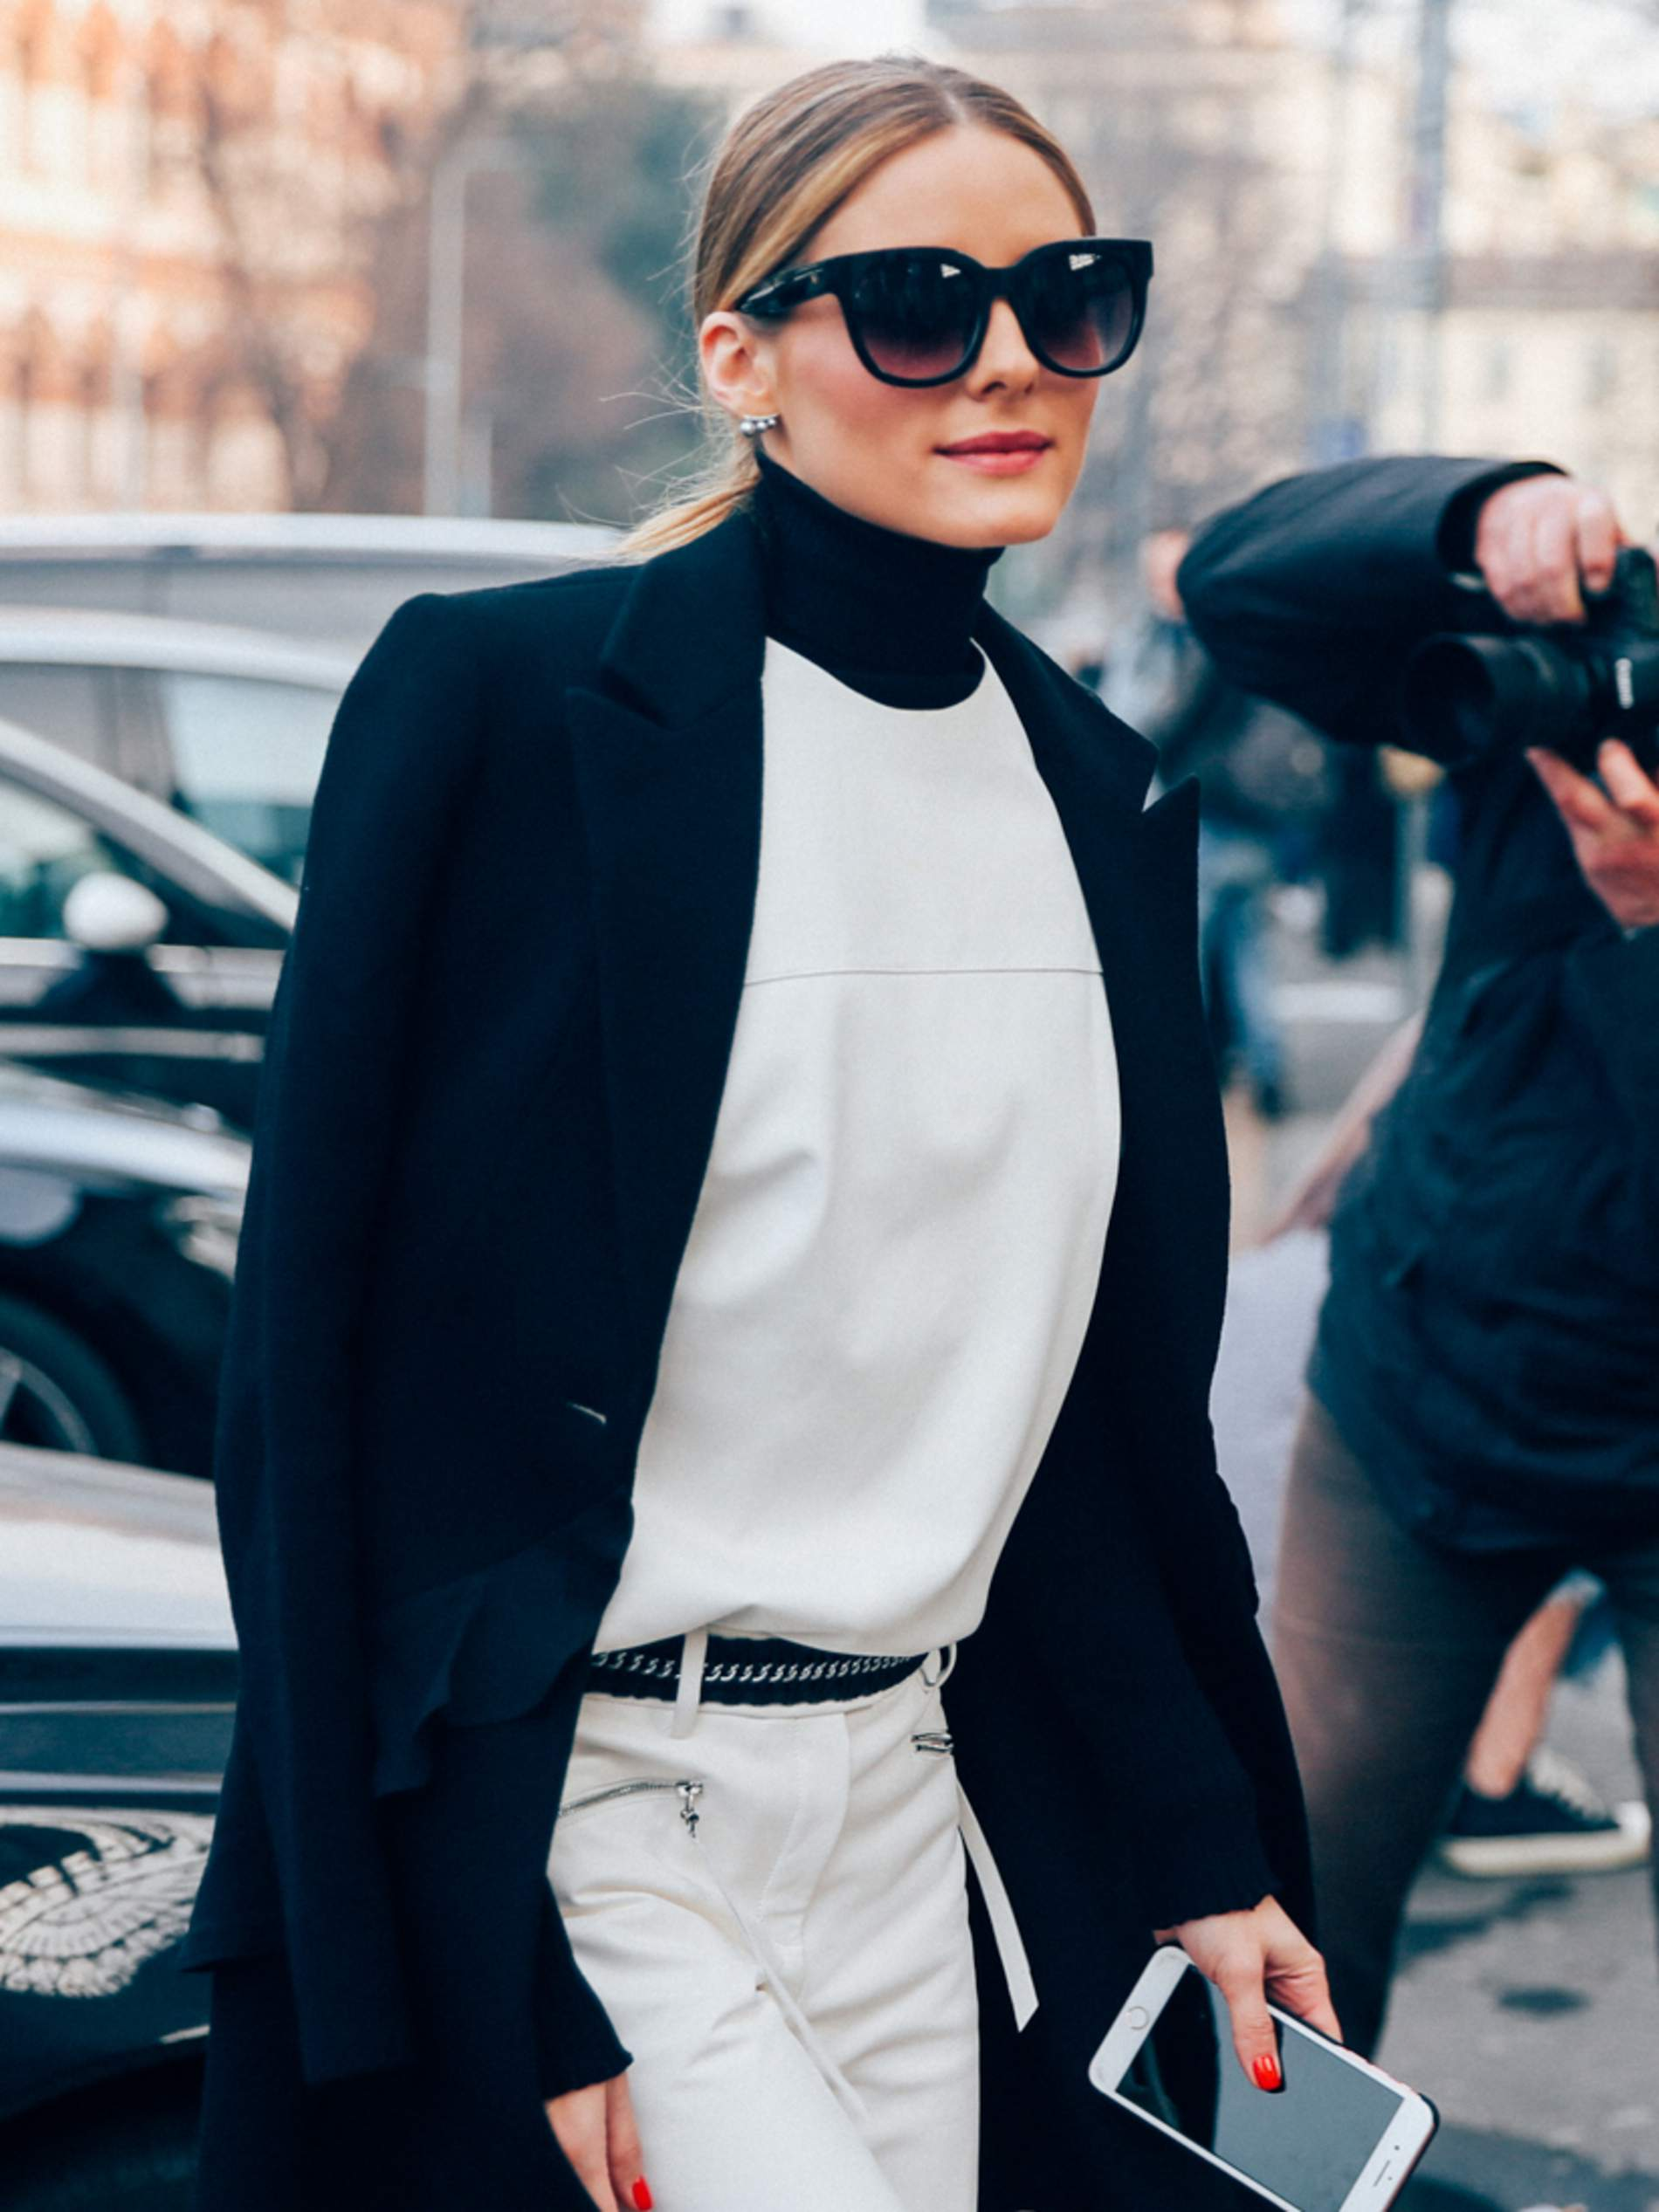 0a1af4d474 Ever since appearing on reality series The City, OLIVIA PALERMO has paved  her way as one of NYC's most discerning dressers. But when it comes to  beauty?